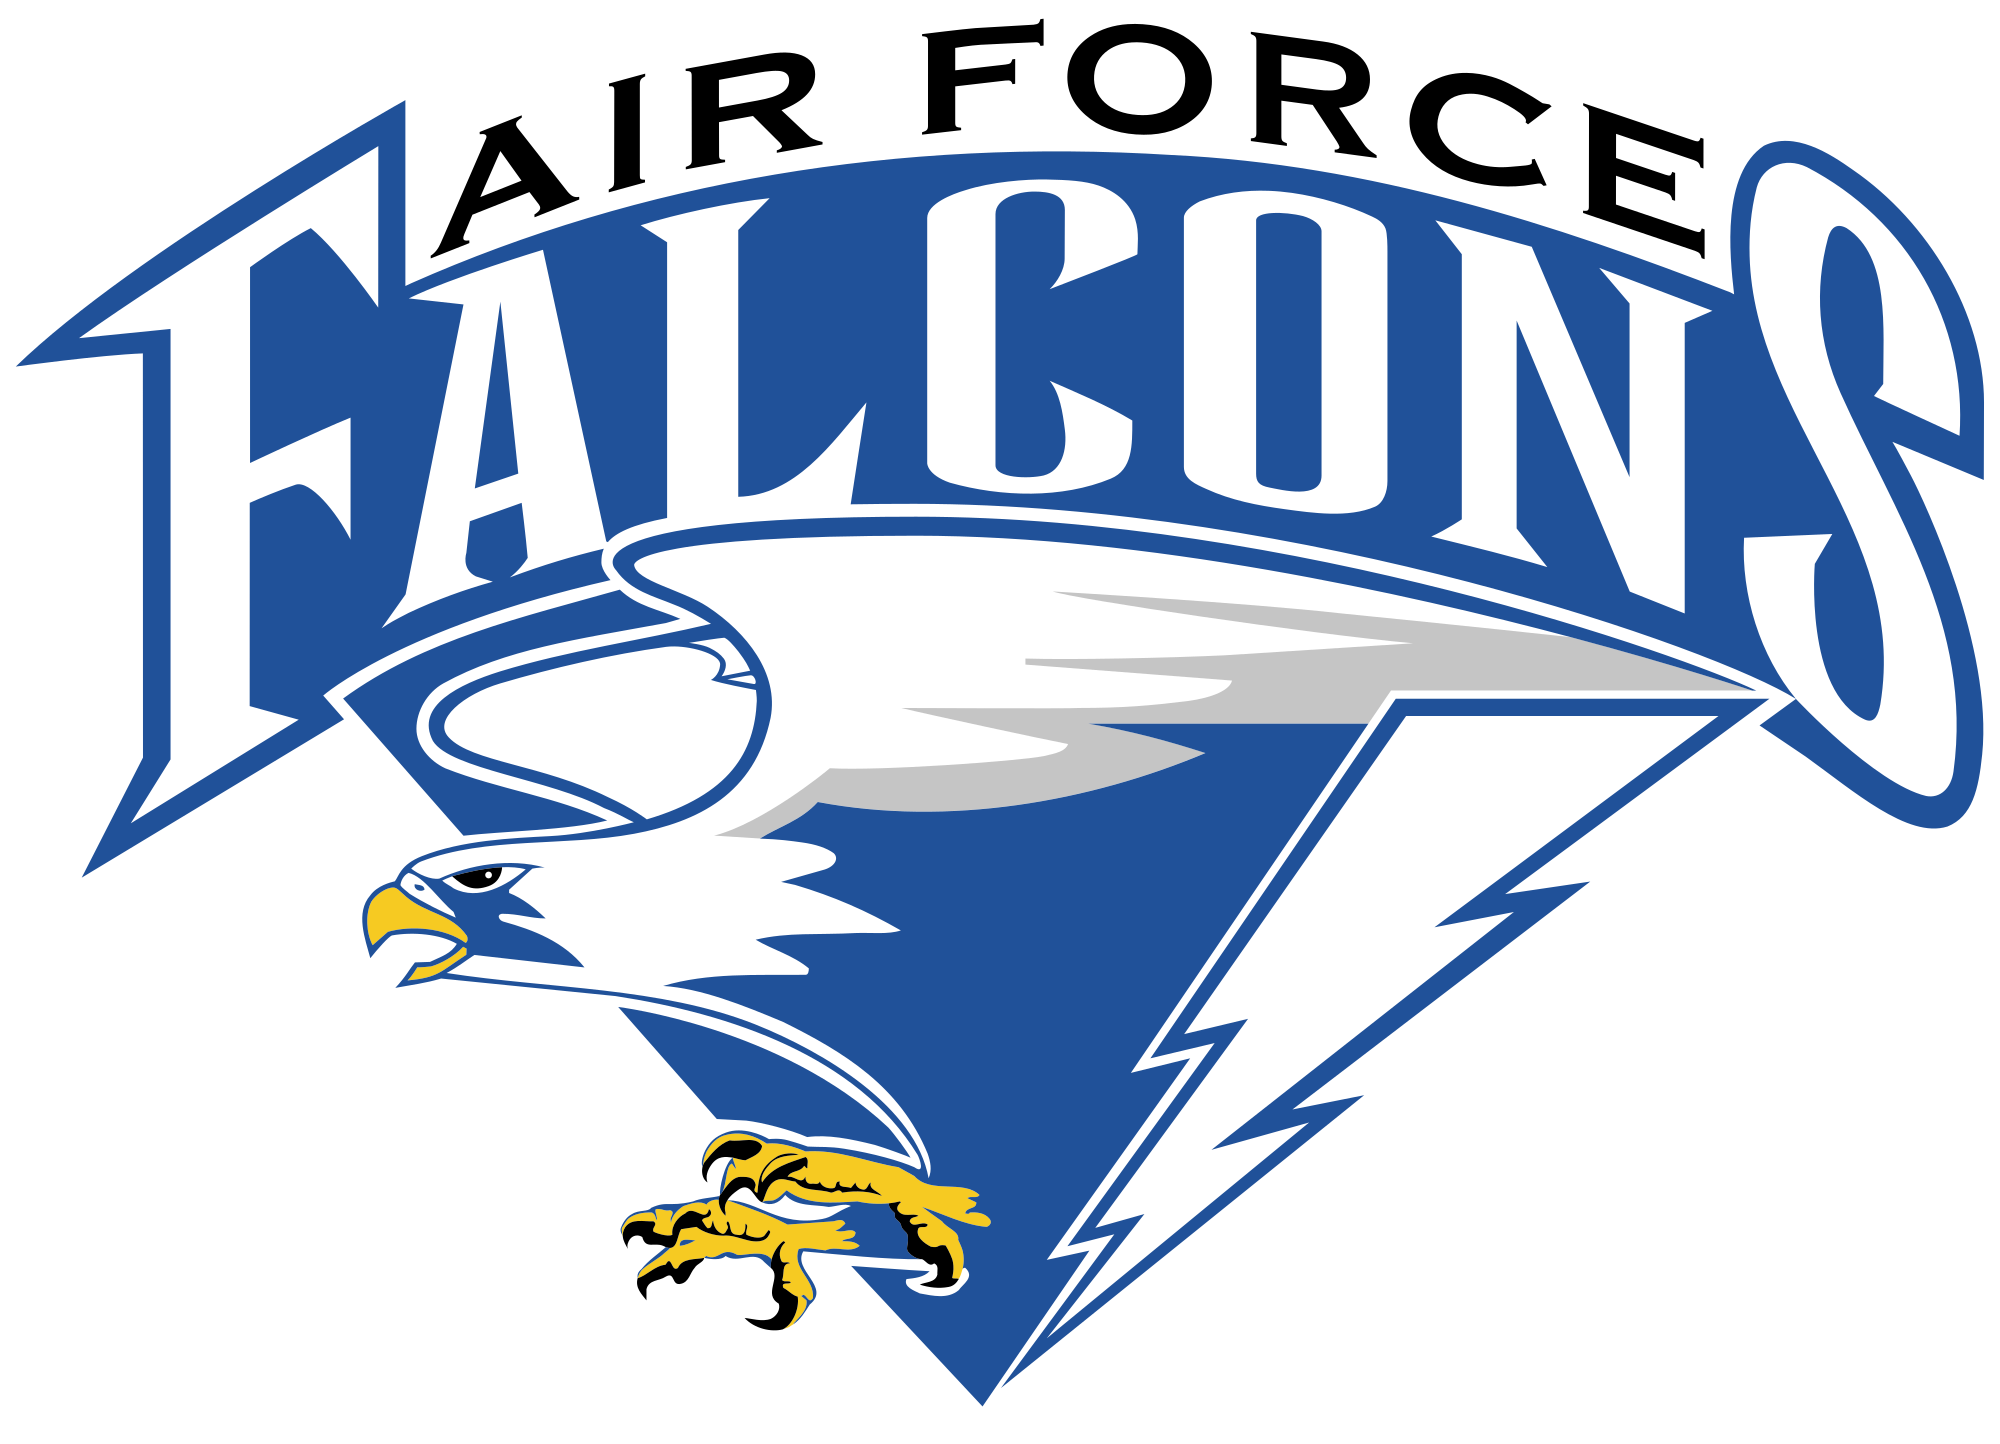 Google Image Result For Https Upload Wikimedia Org Wikipedia Commons Thumb 2 24 Air Force Falcons Air Force Academy United States Air Force Academy Air Force